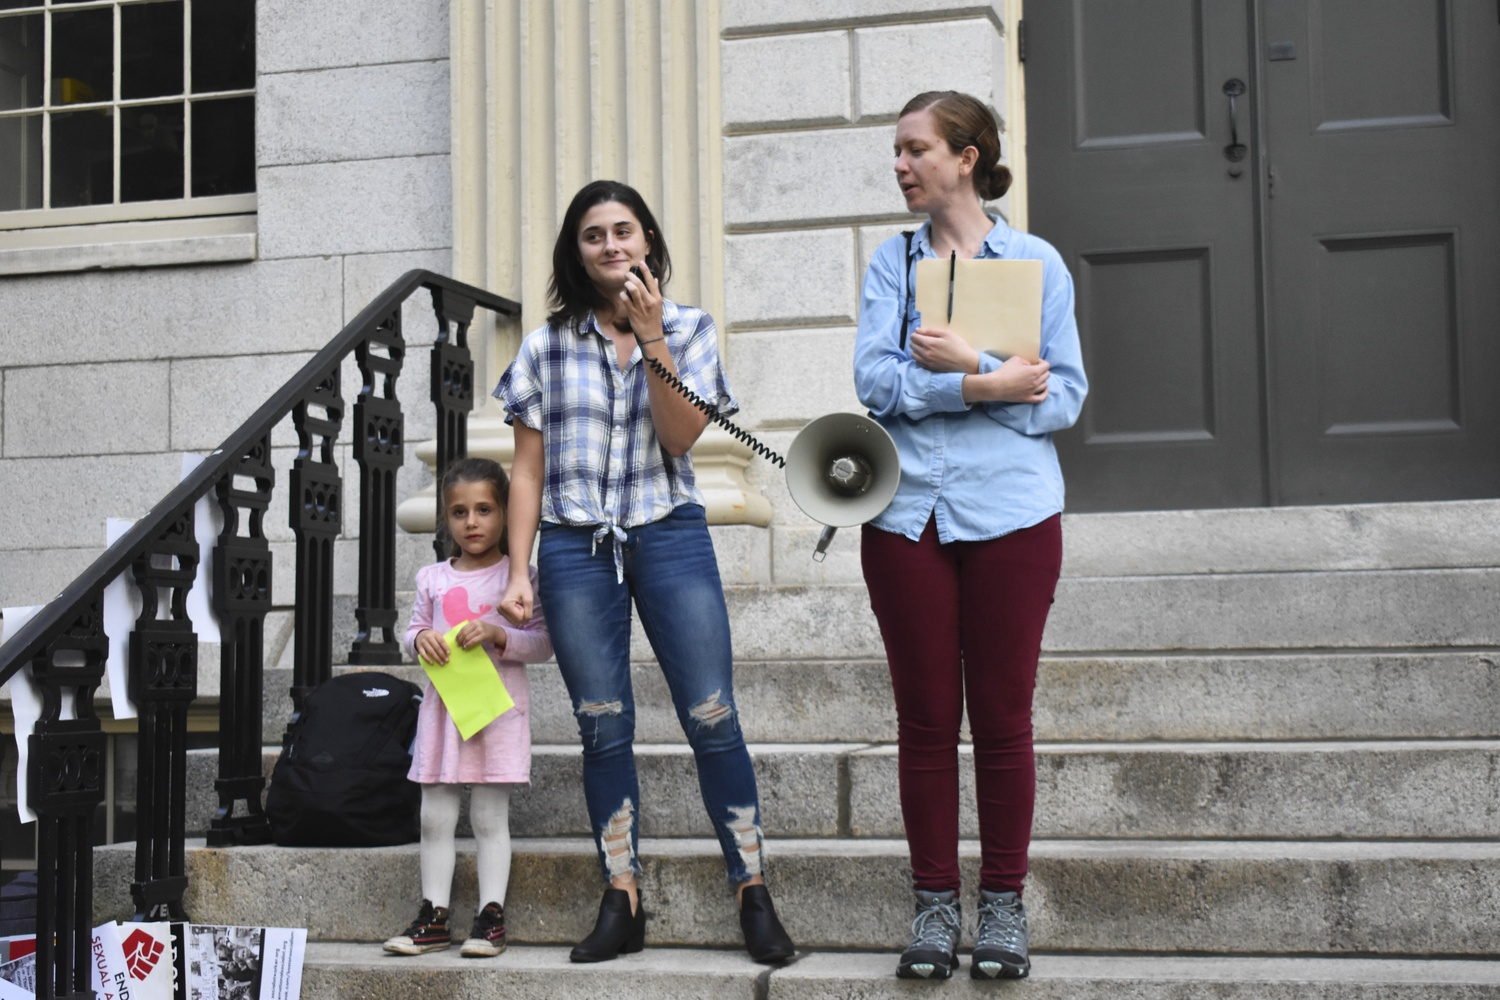 The Harvard International Socialists held a rally against the appointment of Brett M. Kavanaugh to the Supreme Court Thursday afternoon in front of the John Harvard Statue.